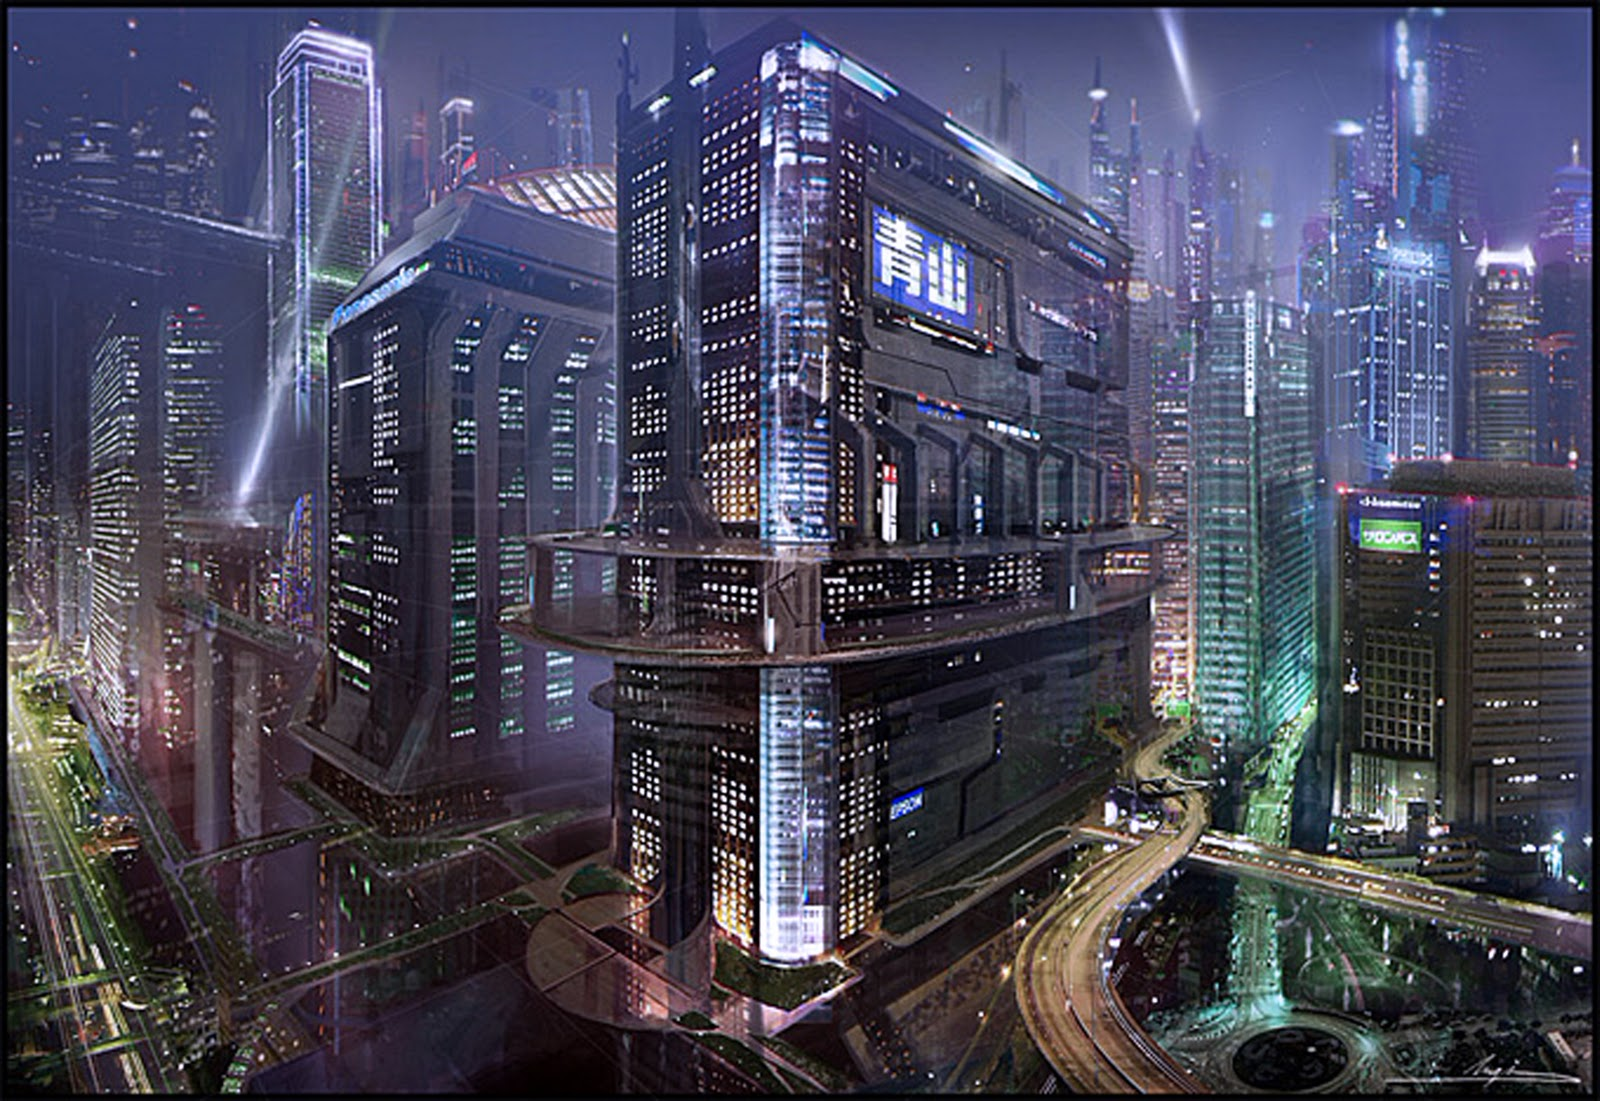 1000 images about city illustrations on pinterest city Concept buildings